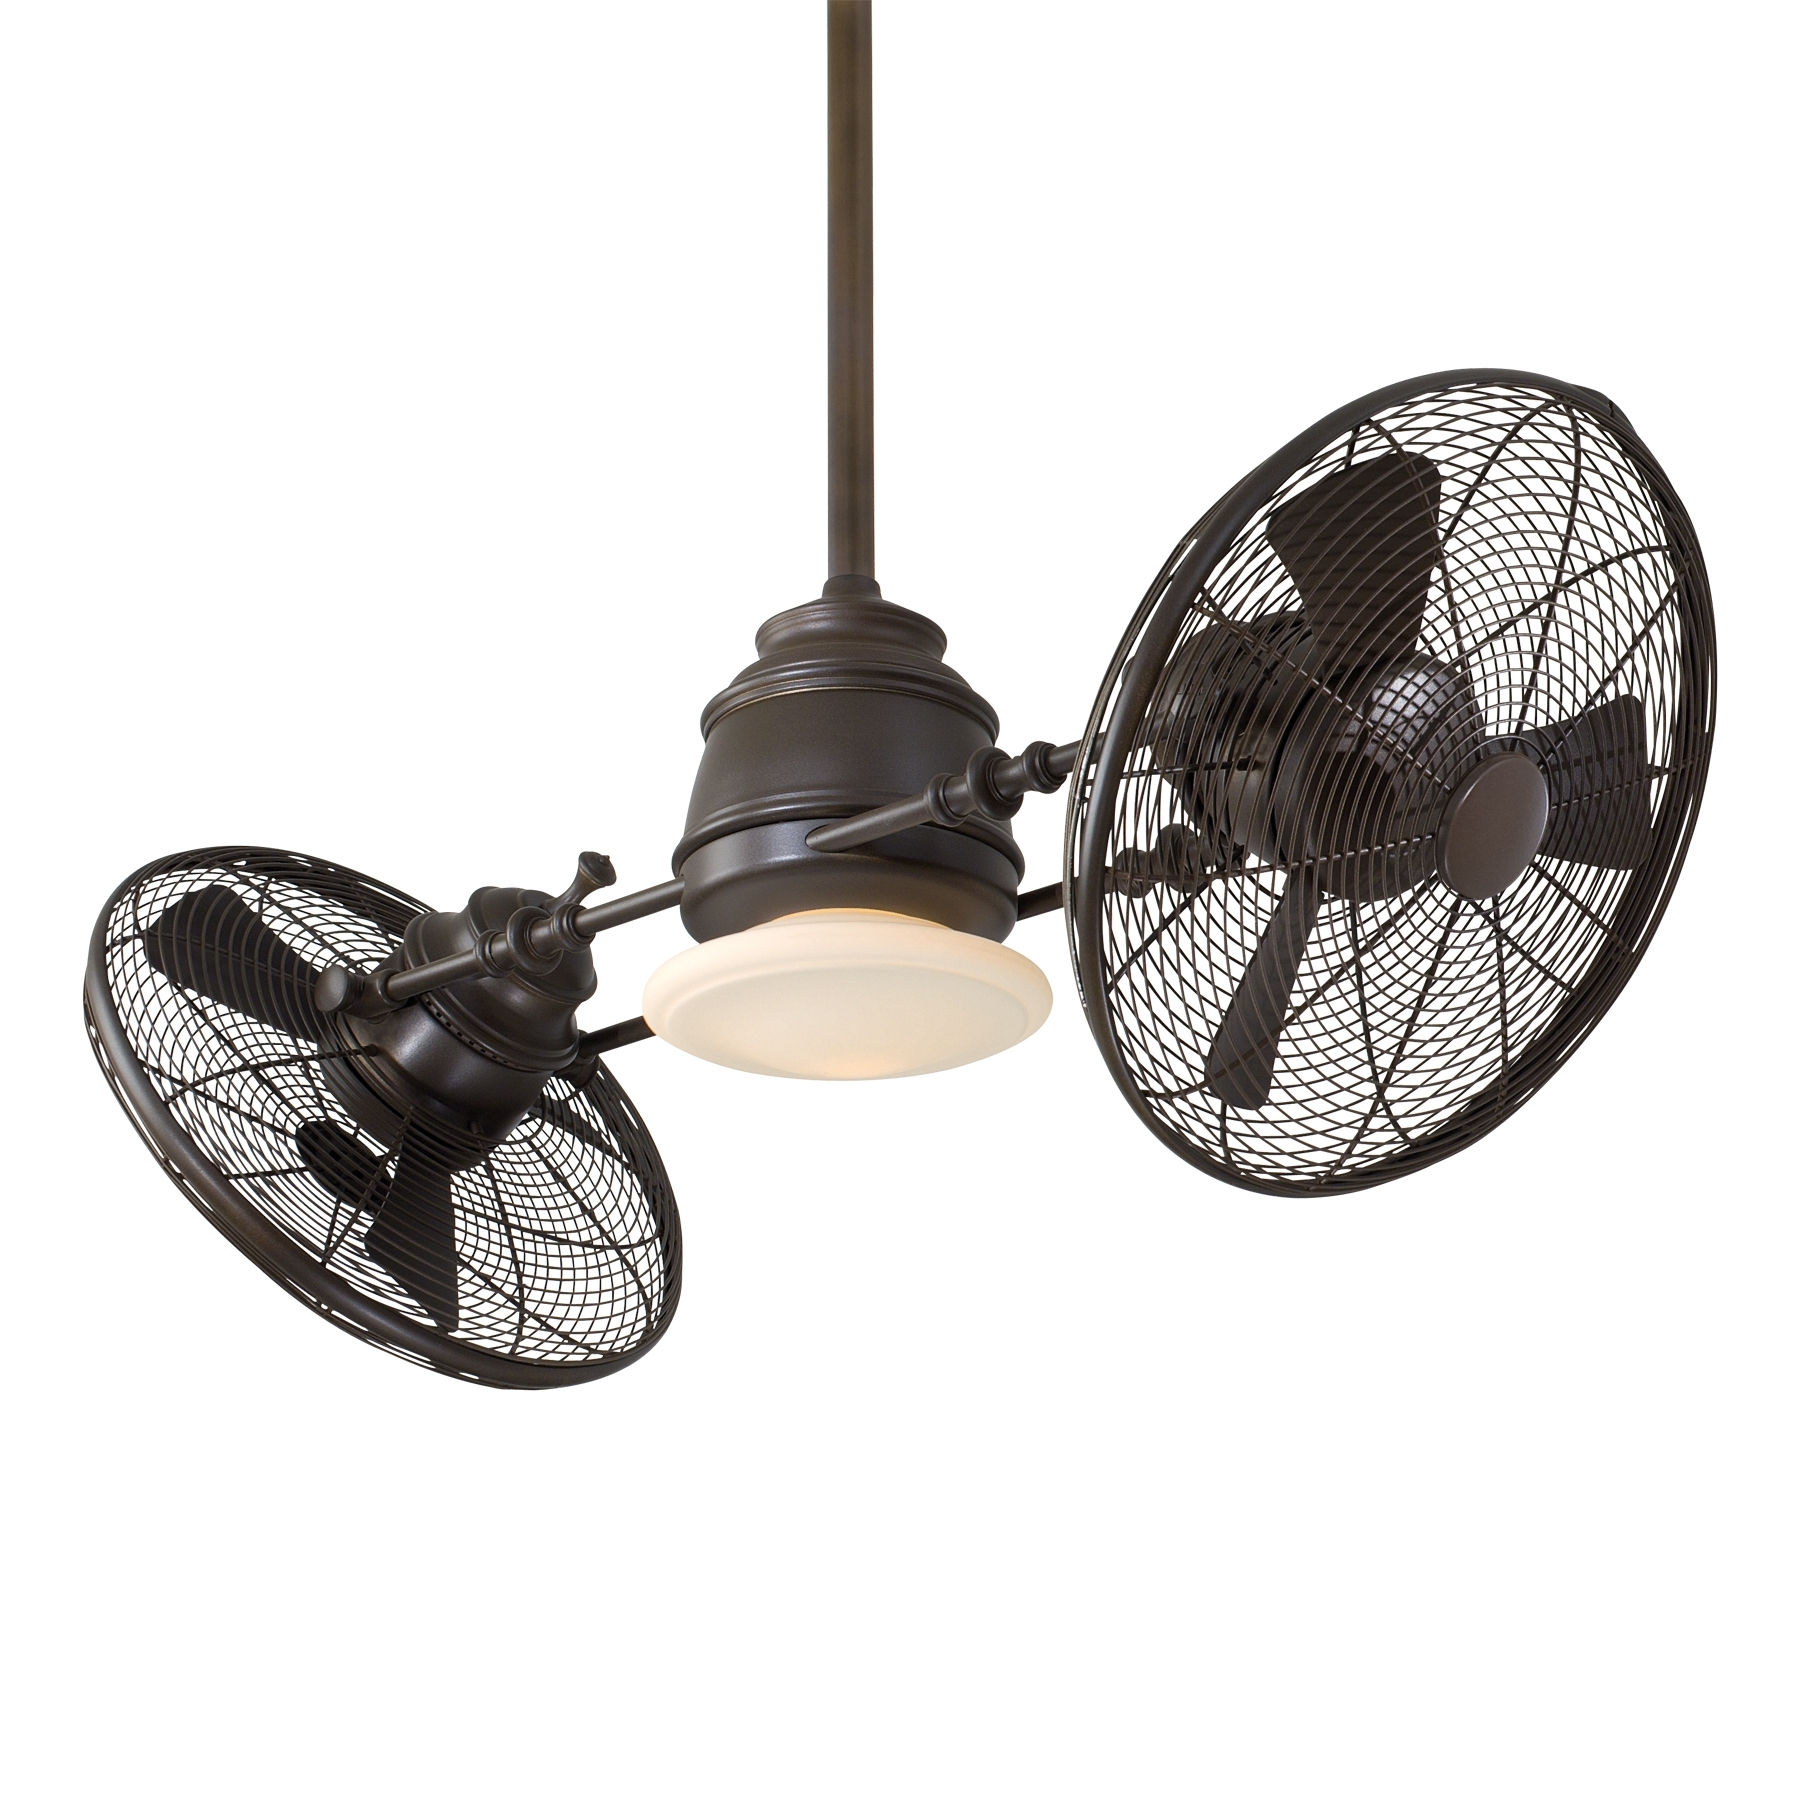 Ceiling Fans : Ceiling Fans Online Lantern Fan Chandelier Combo With Fashionable Vintage Outdoor Ceiling Lights (View 3 of 20)